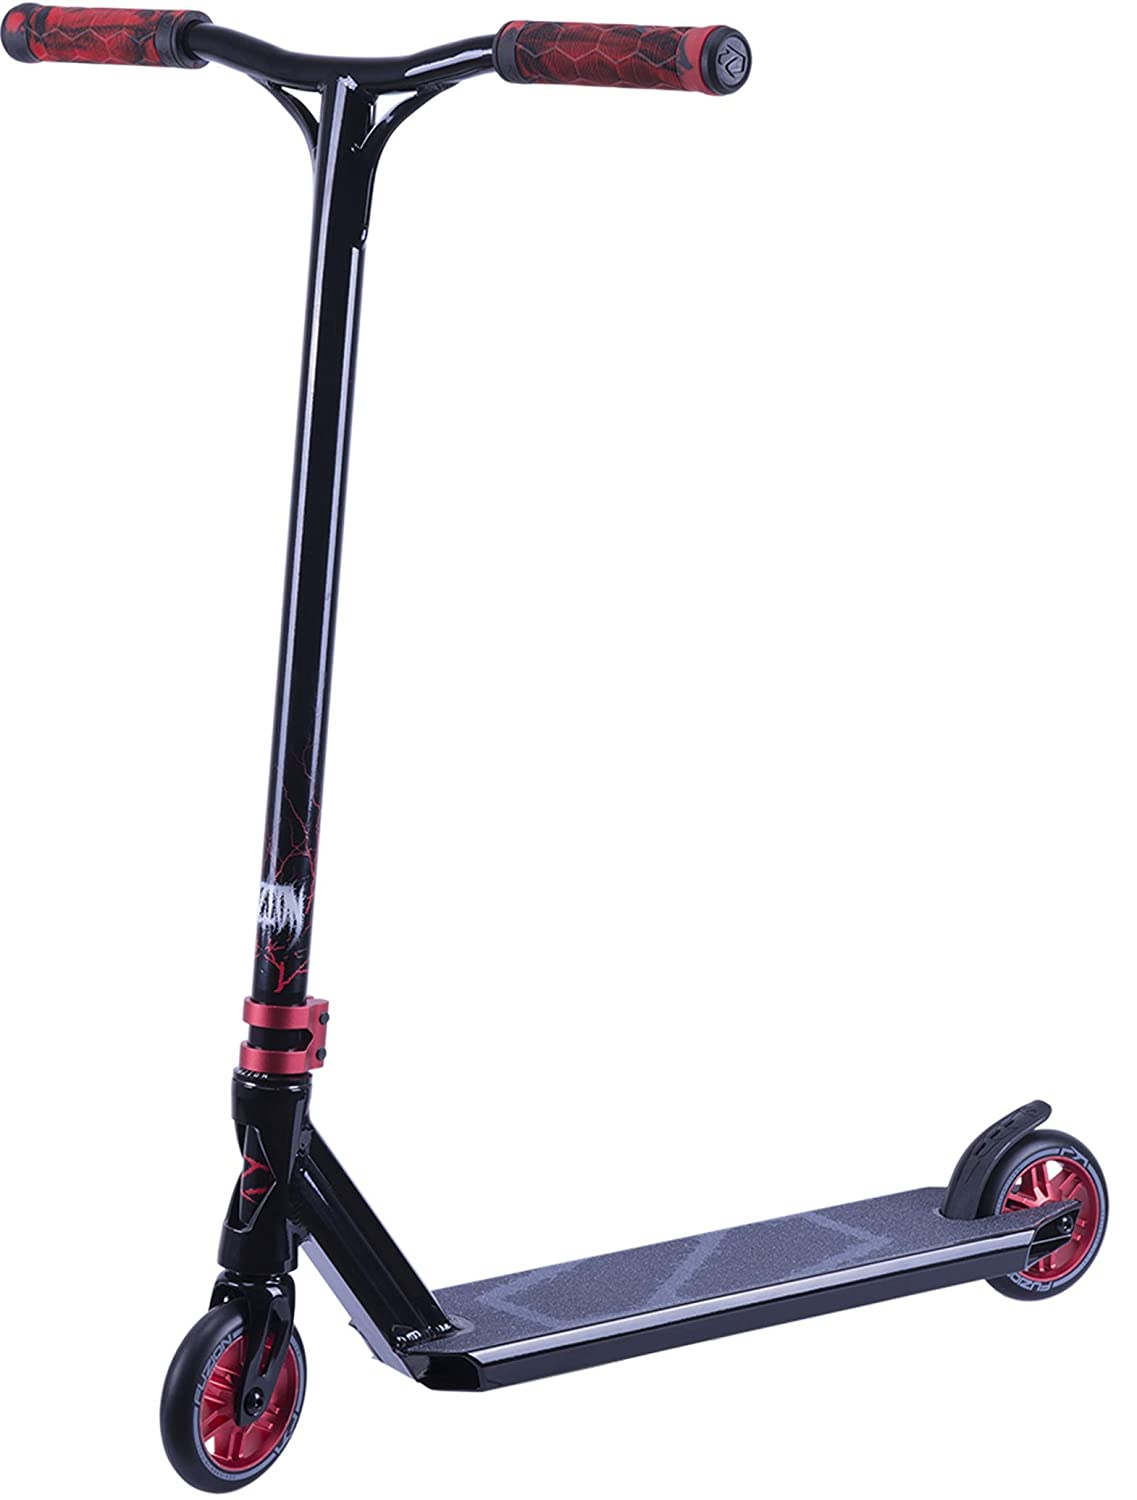 Fuzion Z300 Pro Scooter Complete (Rage) - Best Stunt Scooter